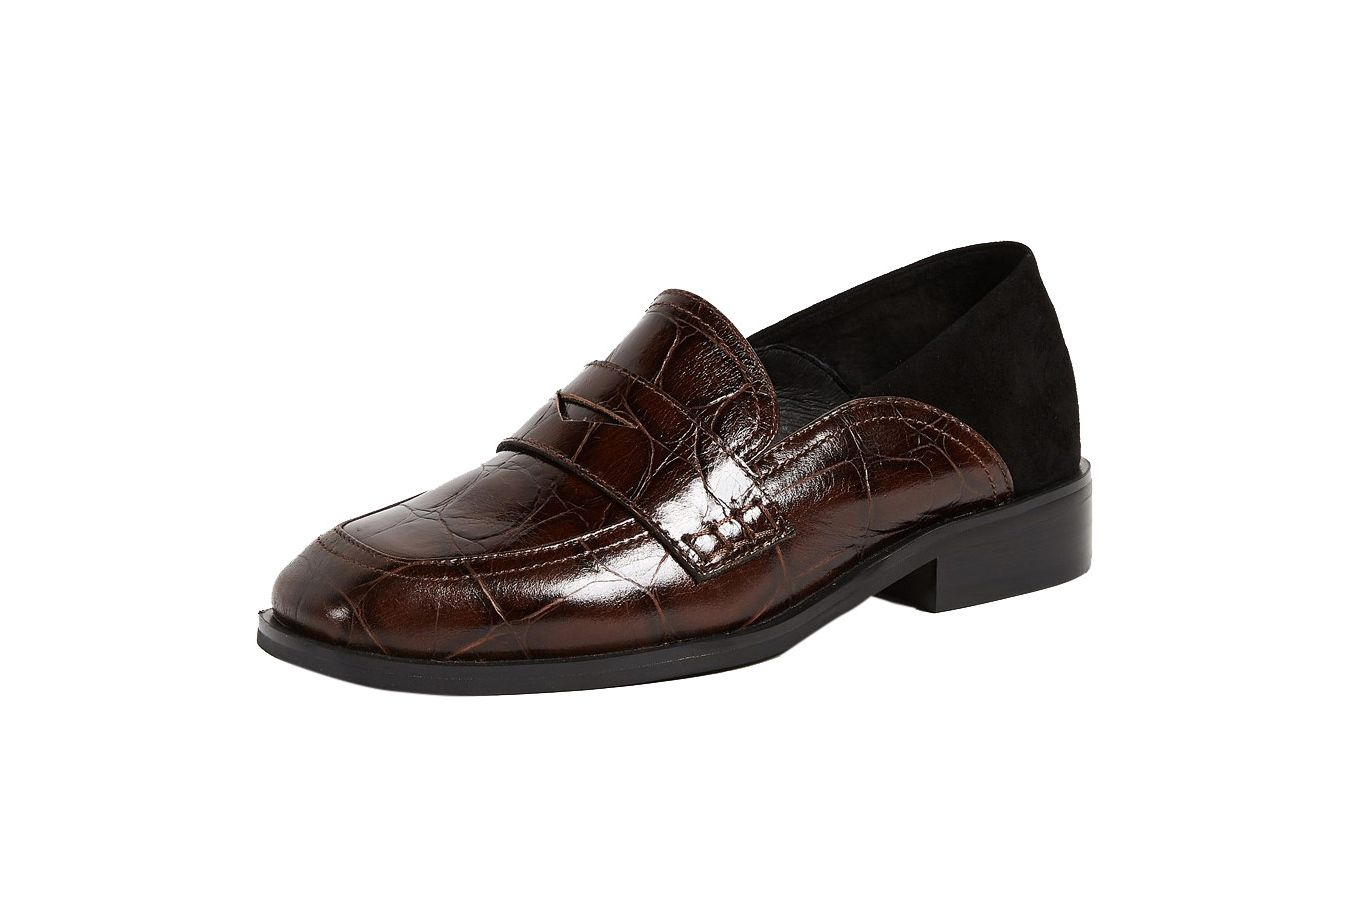 Jeffrey Campbel Triumph Loafers